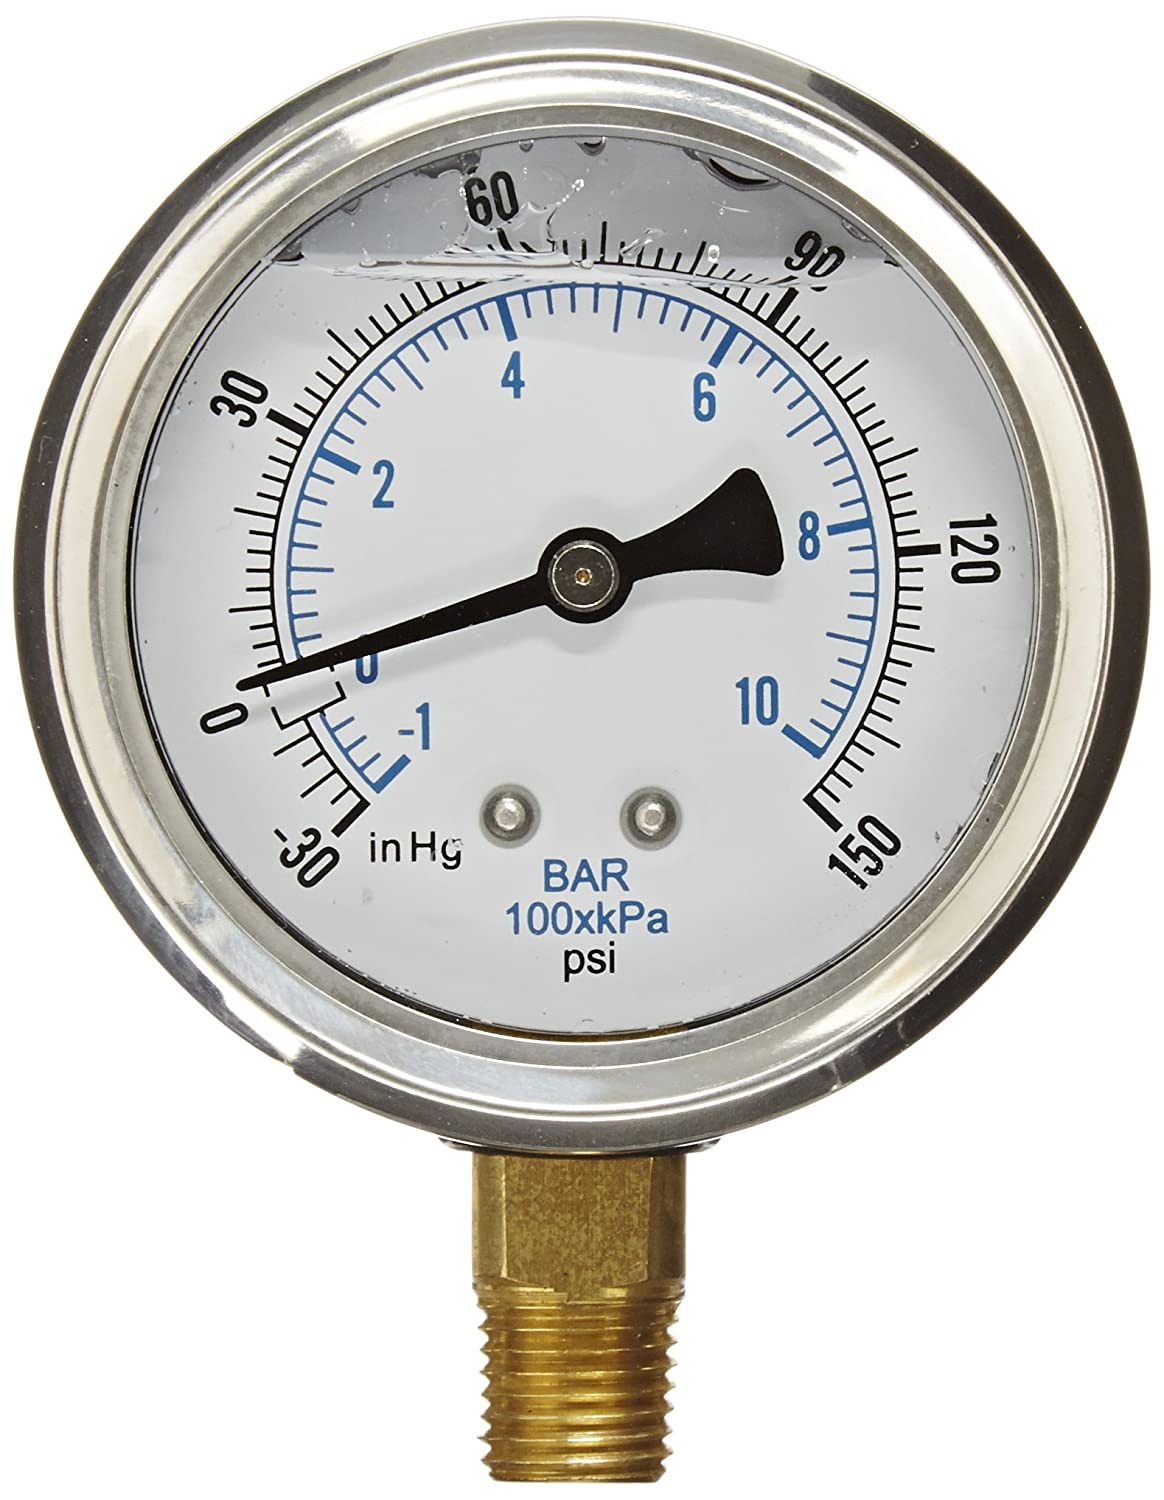 PIC Gauge PRO 201L 254CF Glycerin Filled Industrial Bottom Mount Pressure Gauge with Stainless Steel Case Brass Internals Plastic Lens 2 1 2 Dial Size 1 4 Male NPT 30 0 150 psi